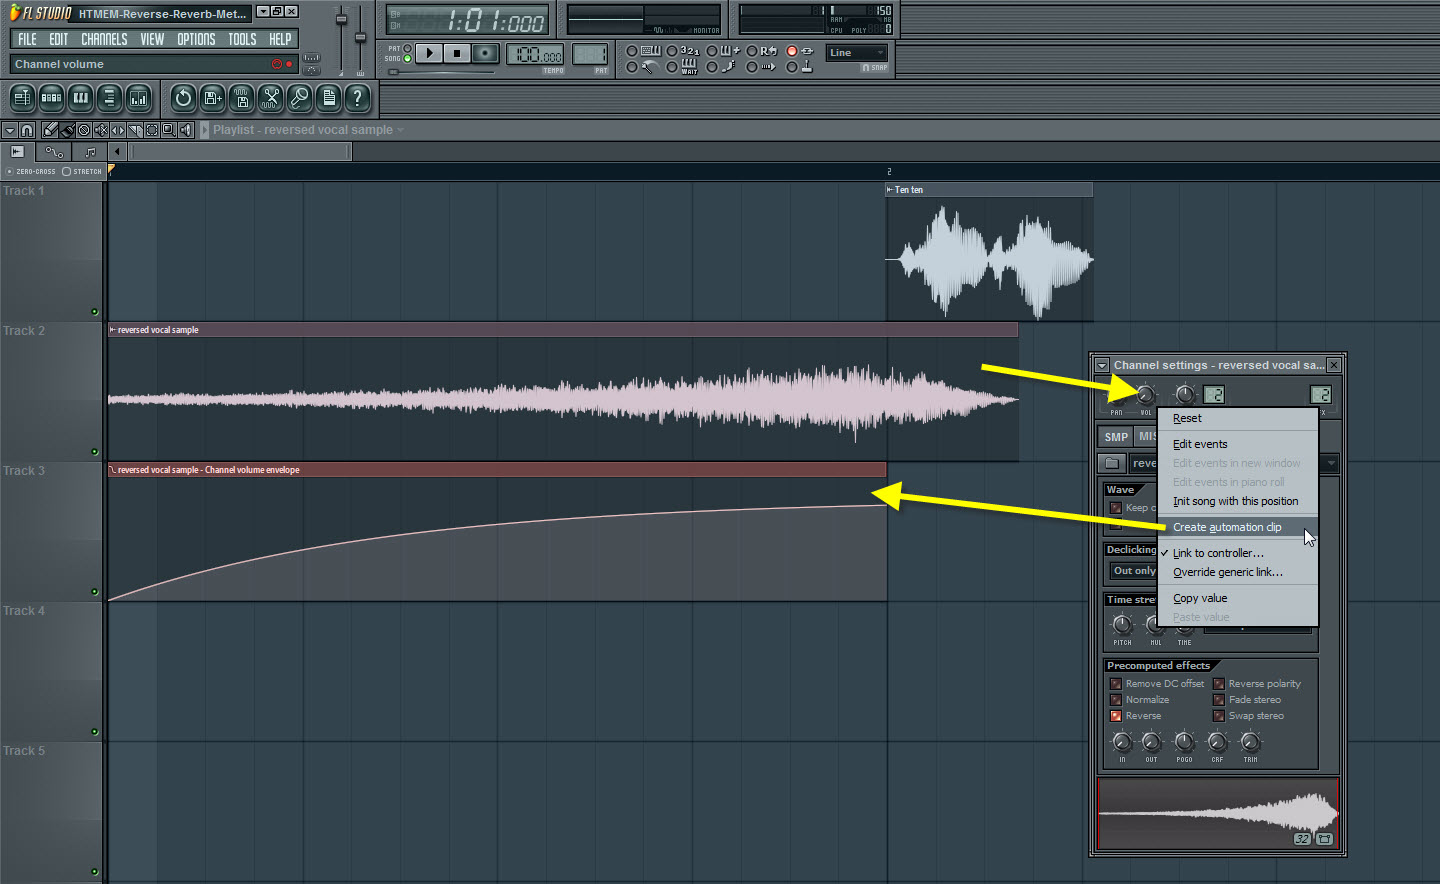 Create Automation Clip For The Reverse Reverbed Sample